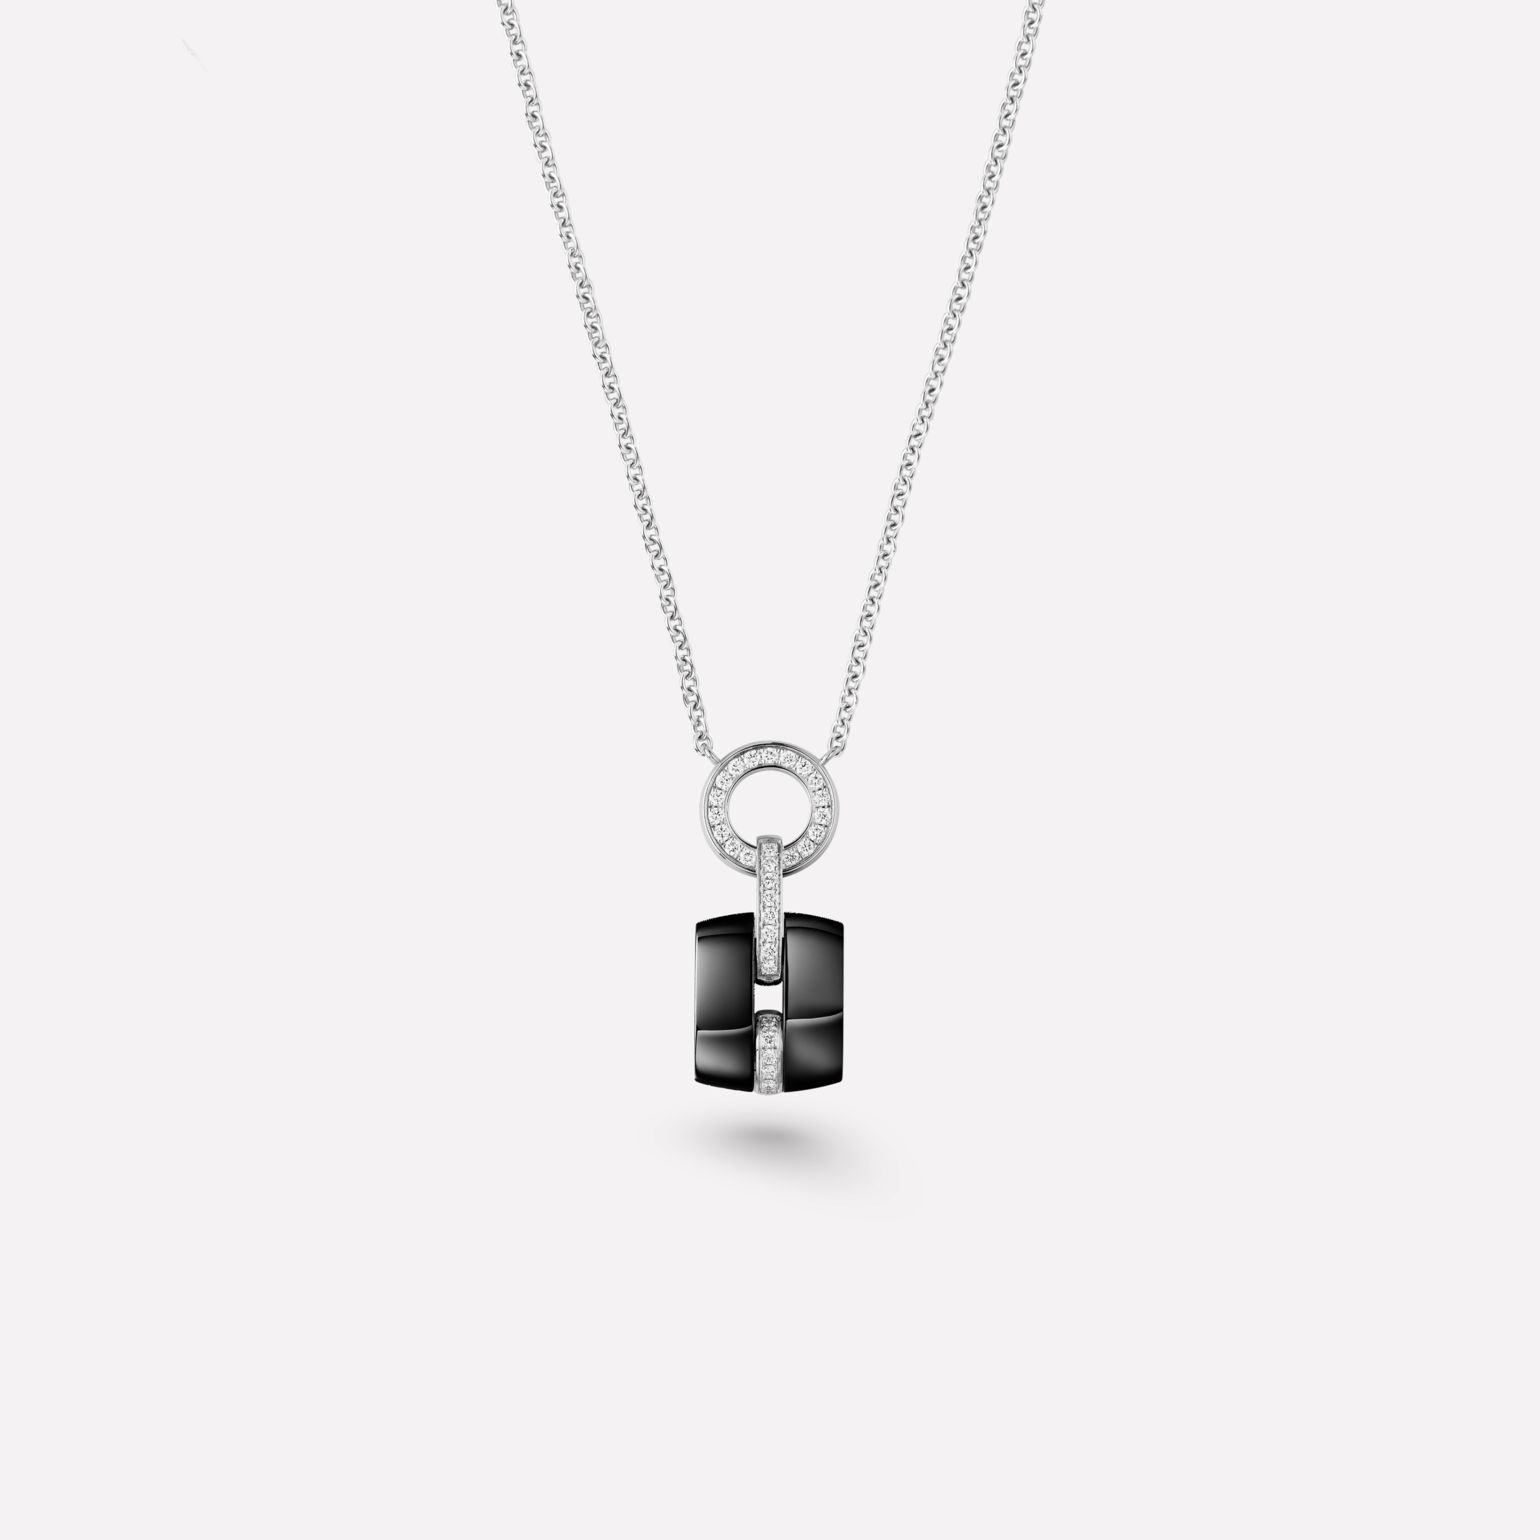 Ultra necklace Ultra necklace in black ceramic, 18K white gold, and diamonds